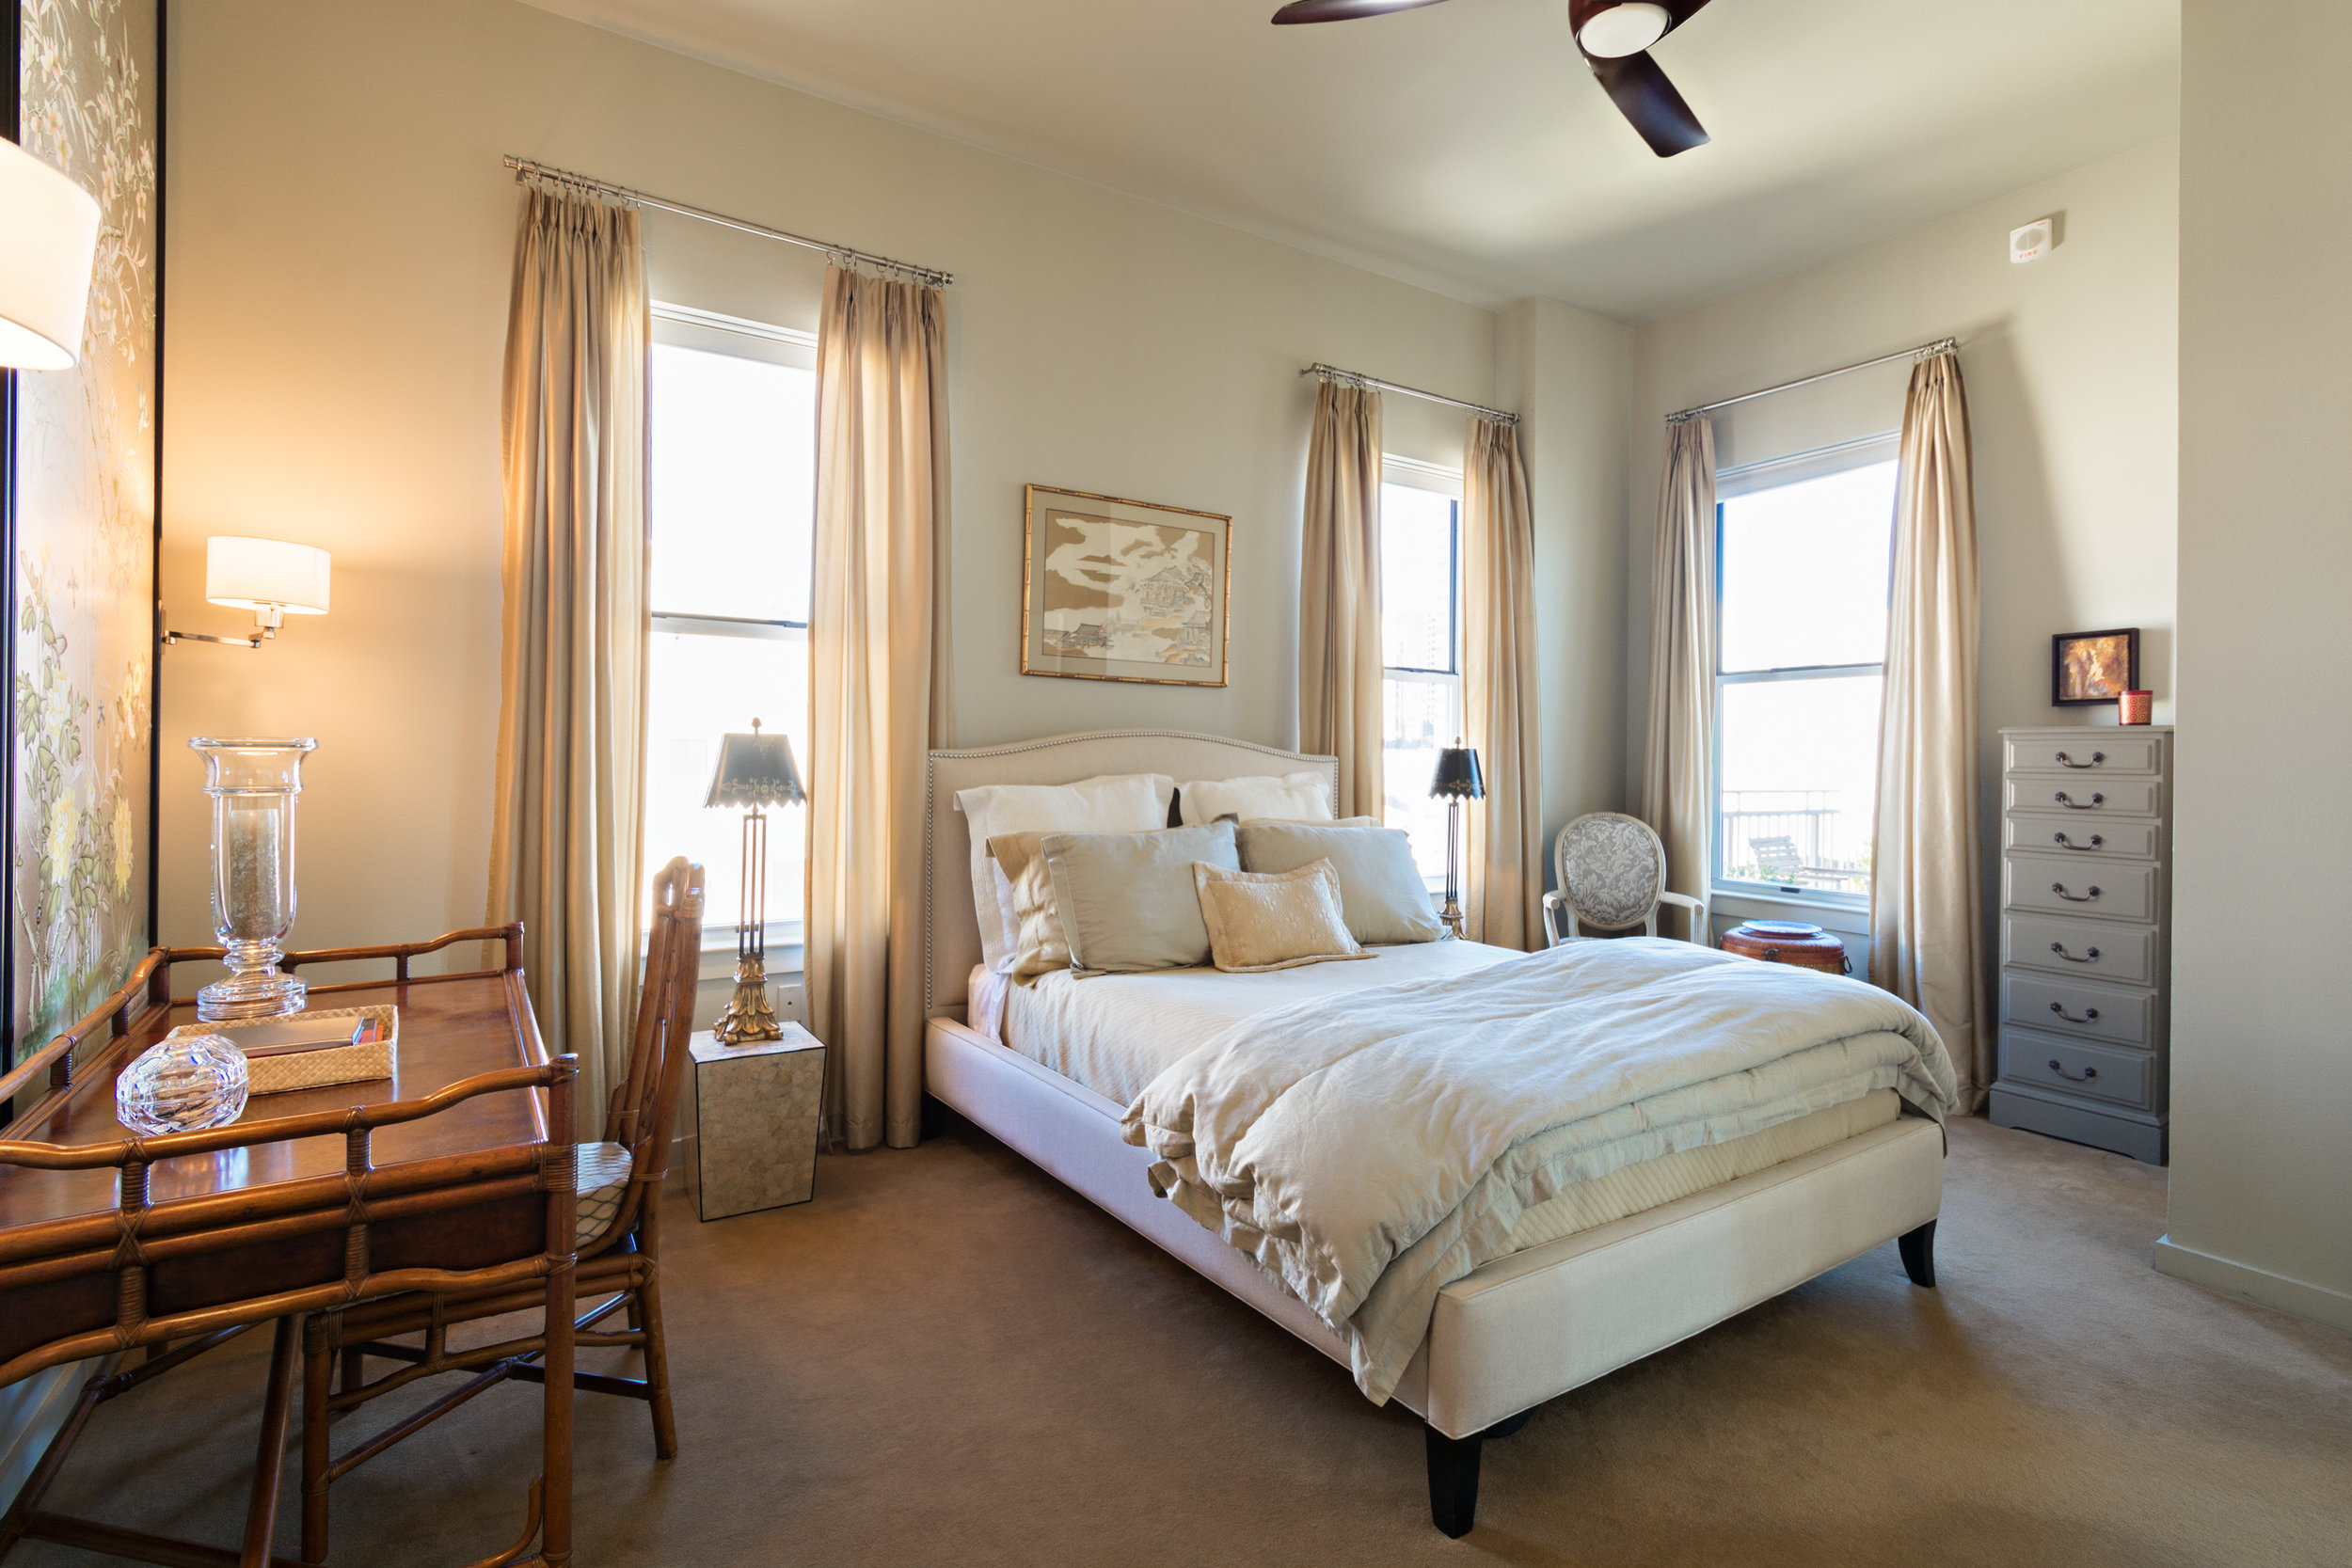 Seller checklist: de-cluttered, clean room, neutral tones, curtains open, and lamps on!